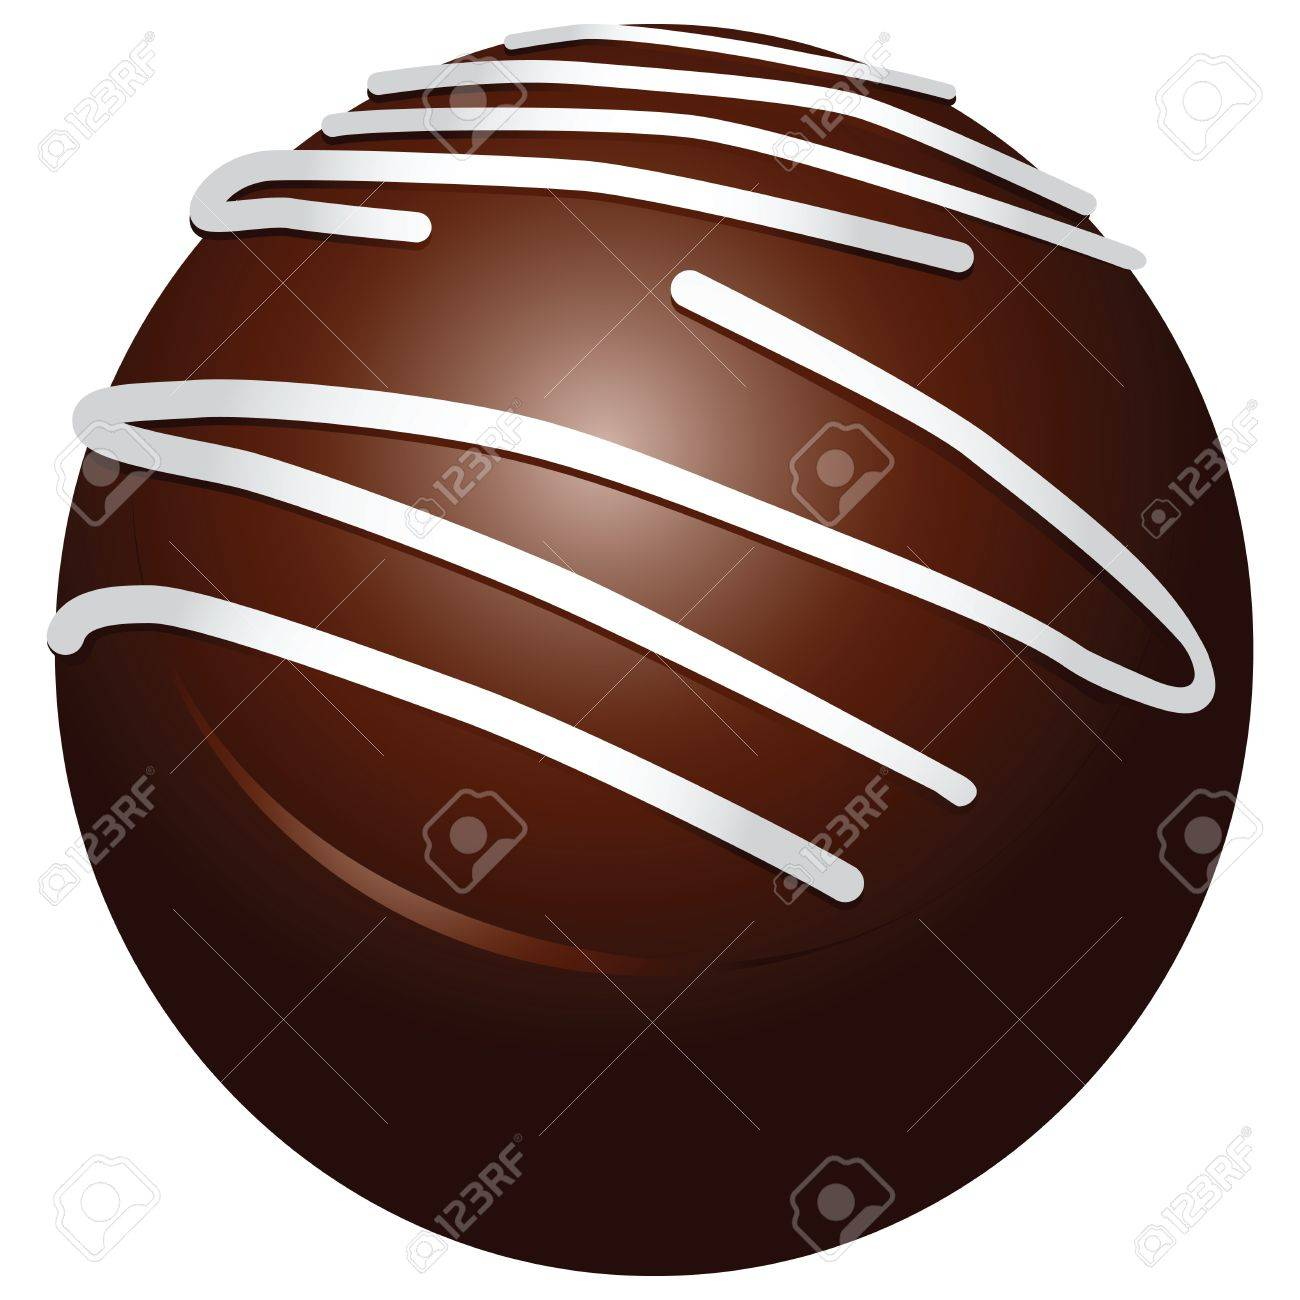 Chocolate candy round with white stripes. Stock Vector - 19562948